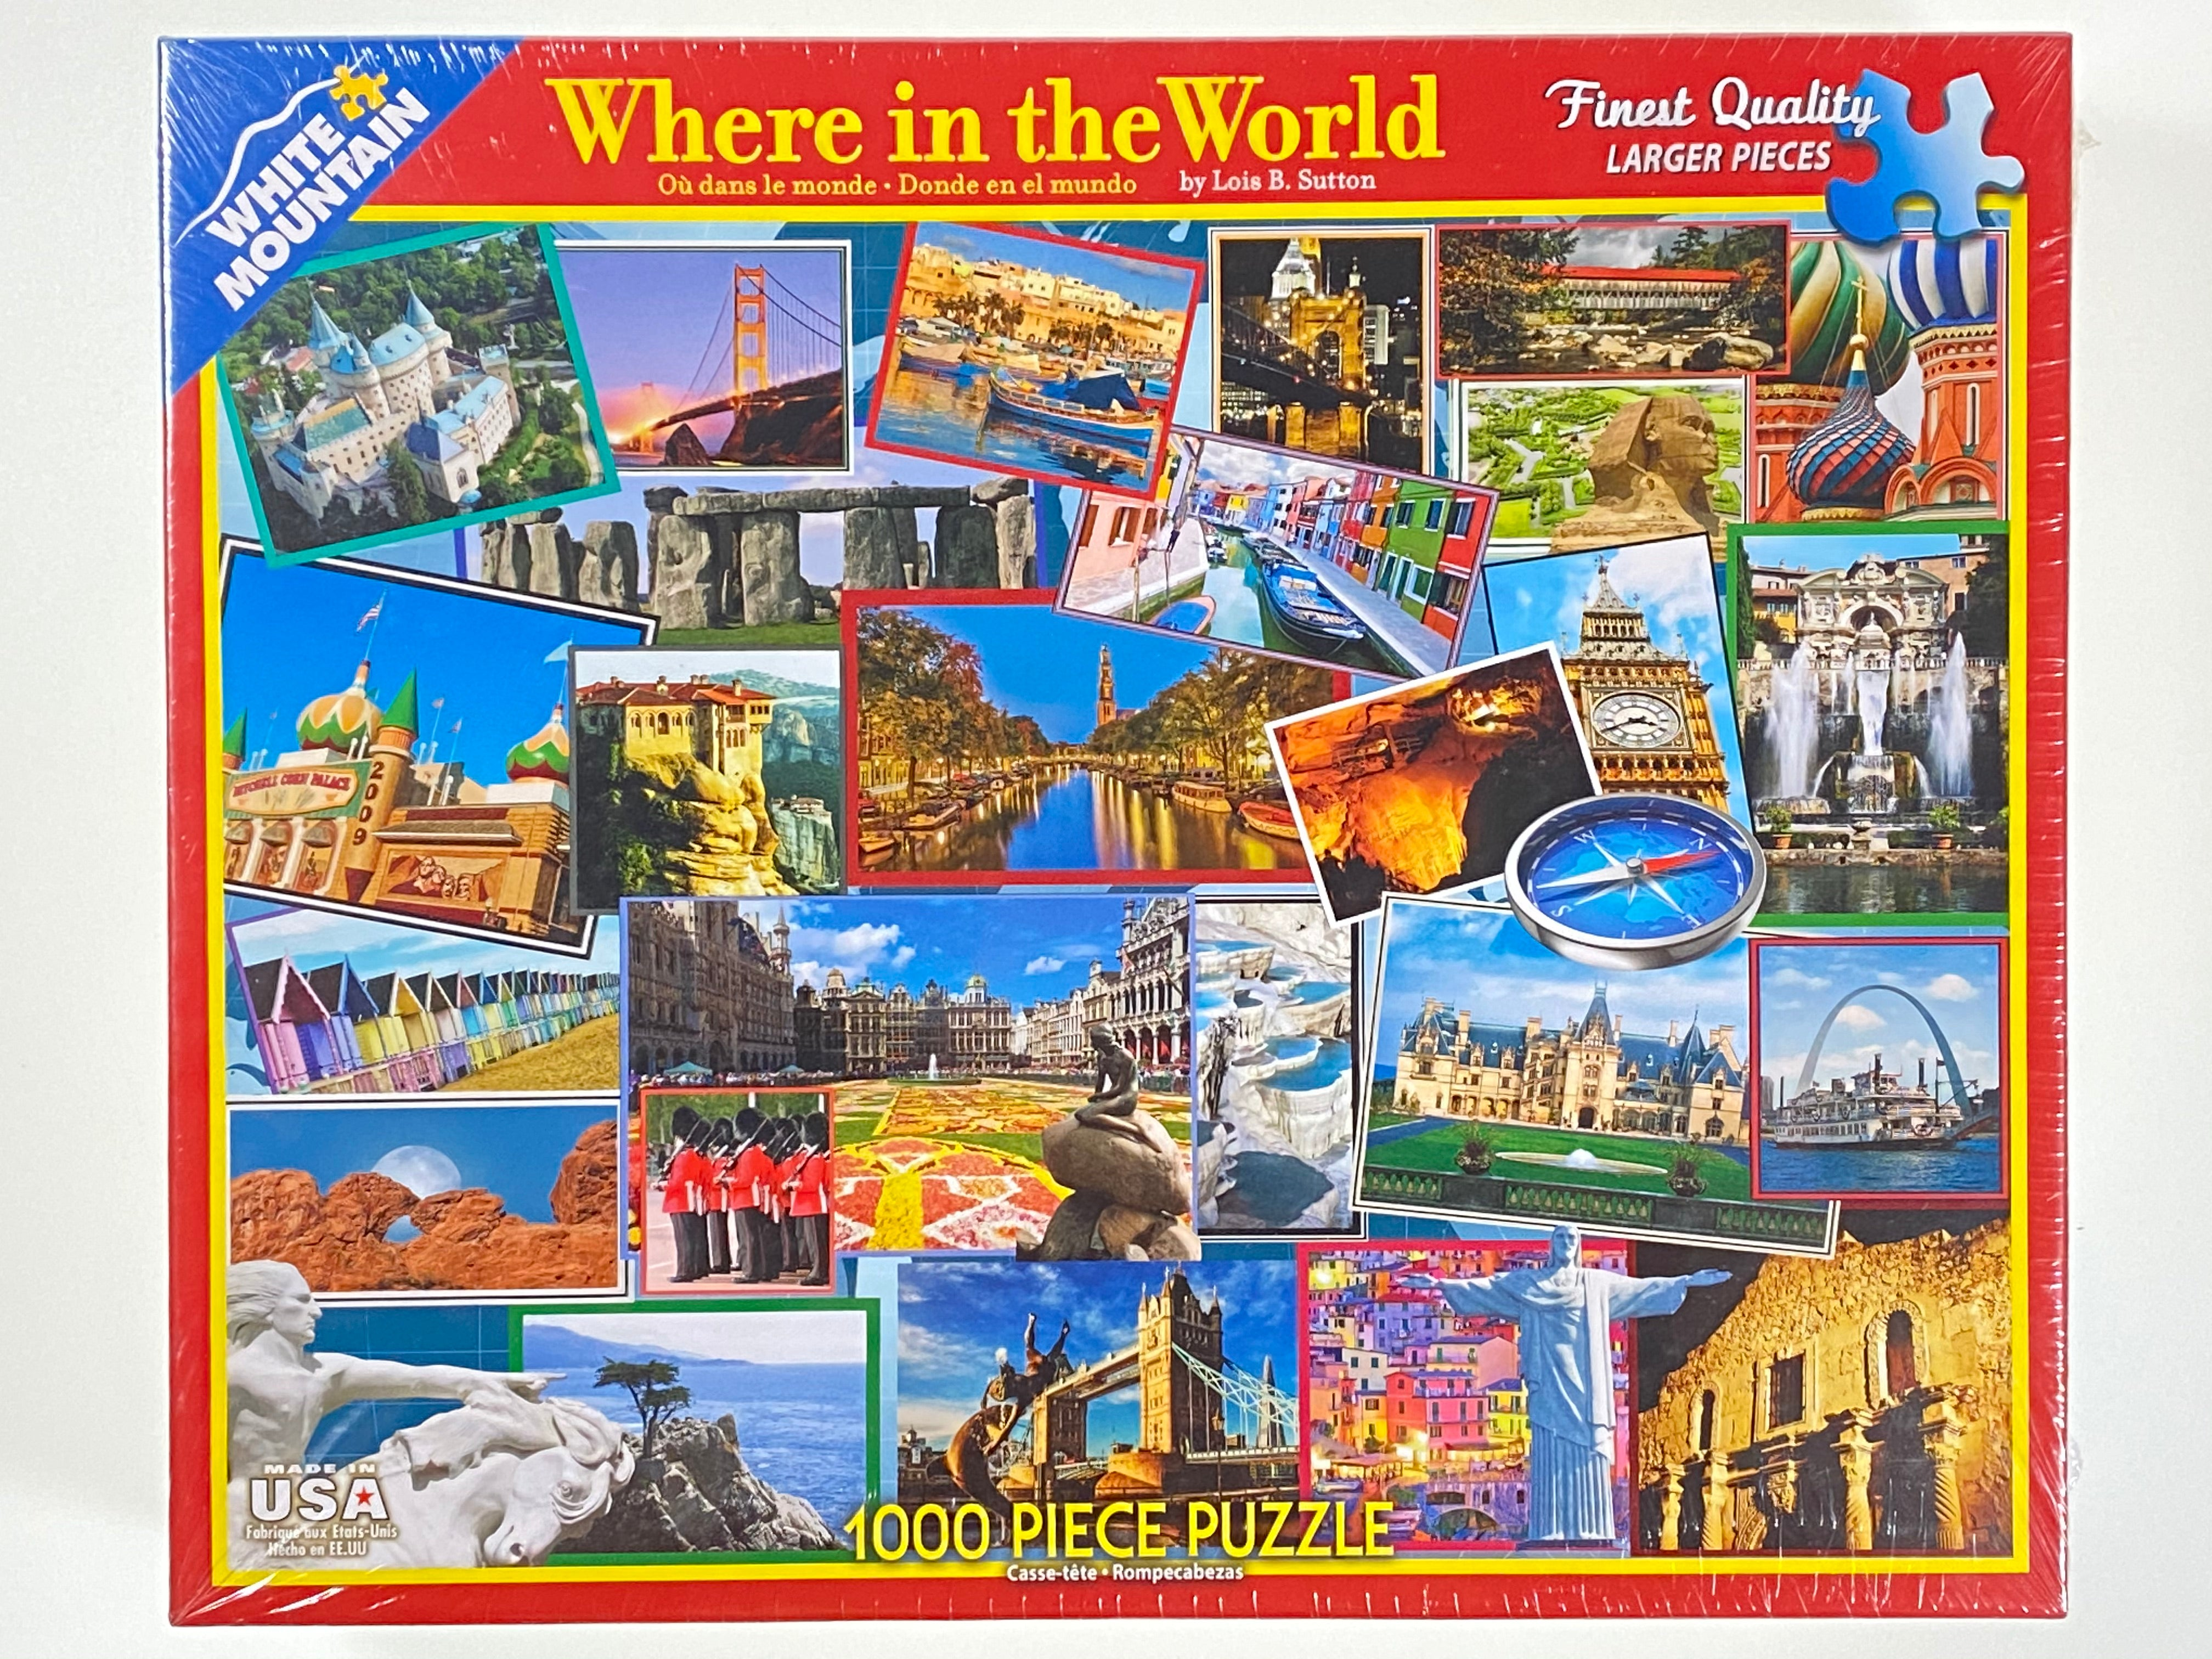 Where in the World 1000 piece puzzle